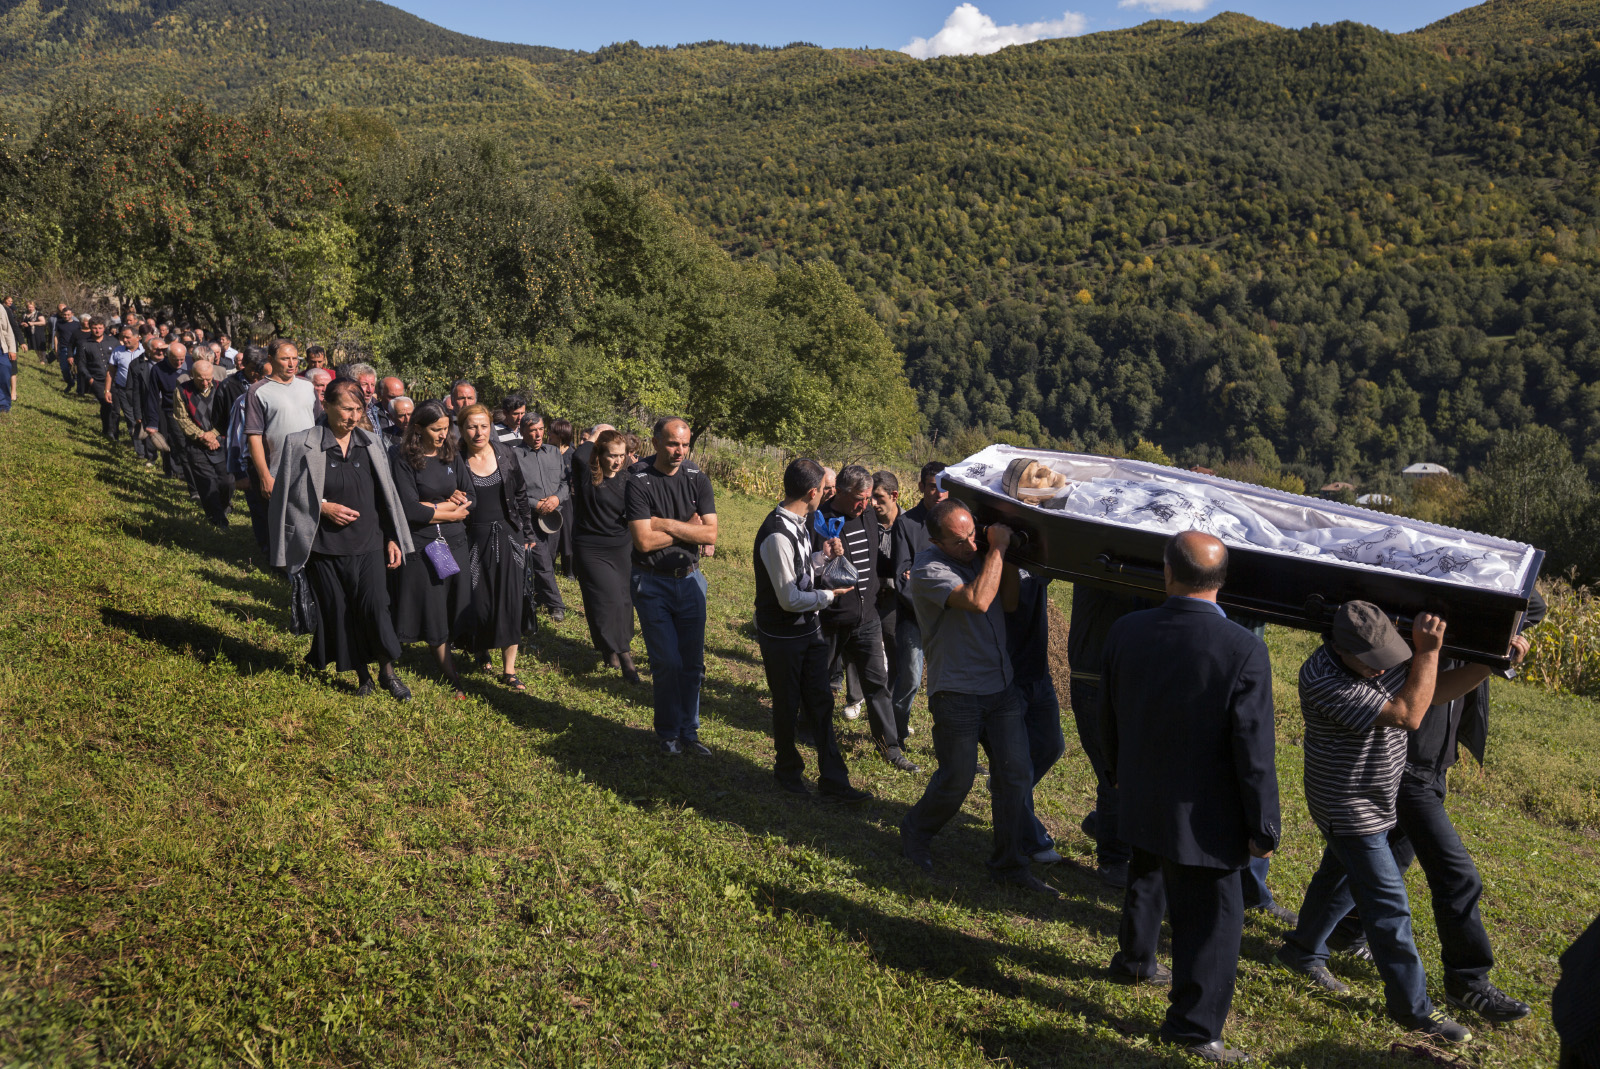 Funeral Procession and burial of Bikenti Khorguani, age 92, the last WWII veteran from Svanetia.